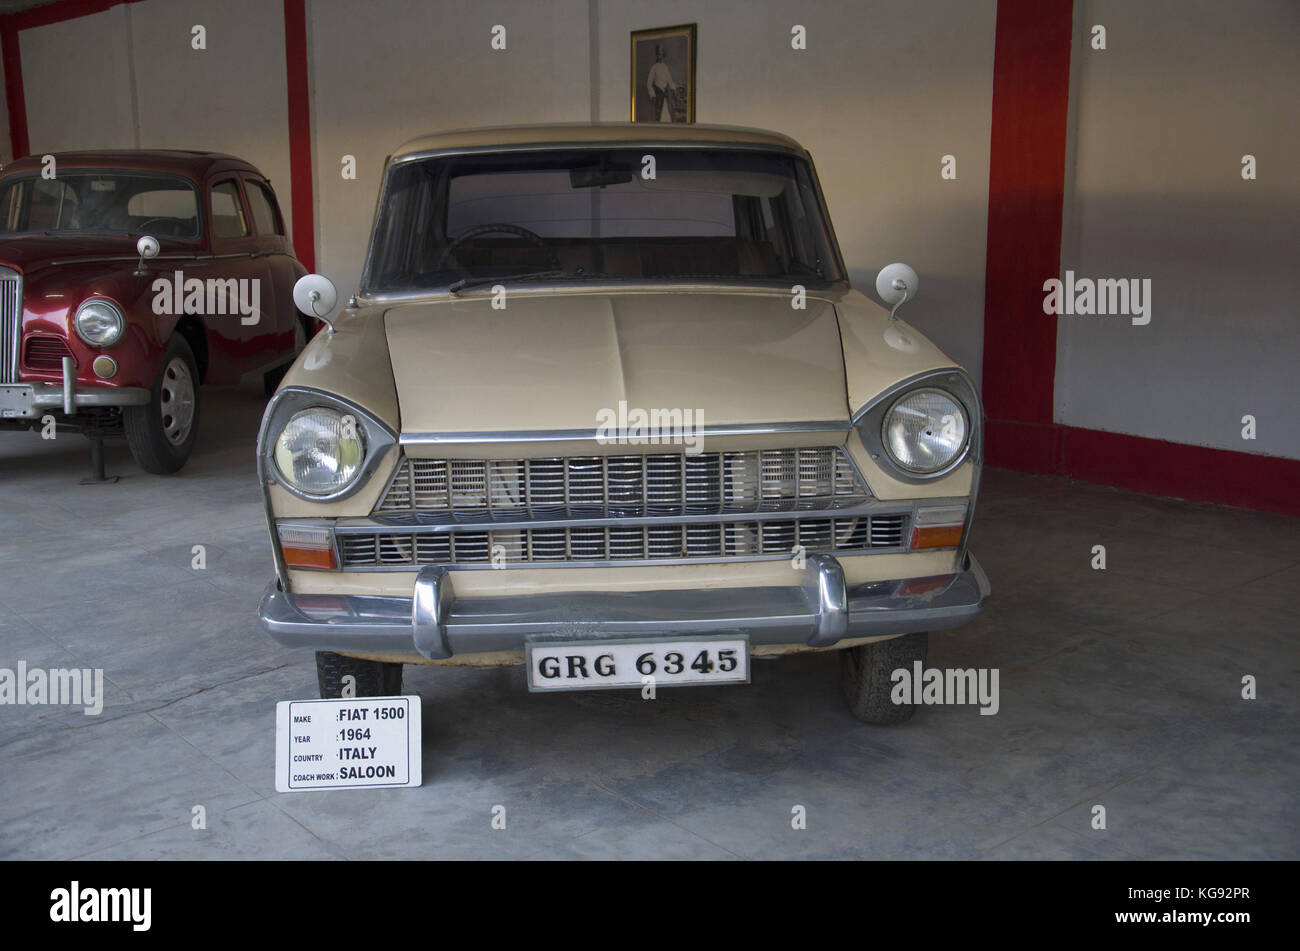 Fiat 1500 (Year 1964), Coach work - saloon, Italy Auto world vintage car museum, Ahmedabad, Gujarat, India Stock Photo